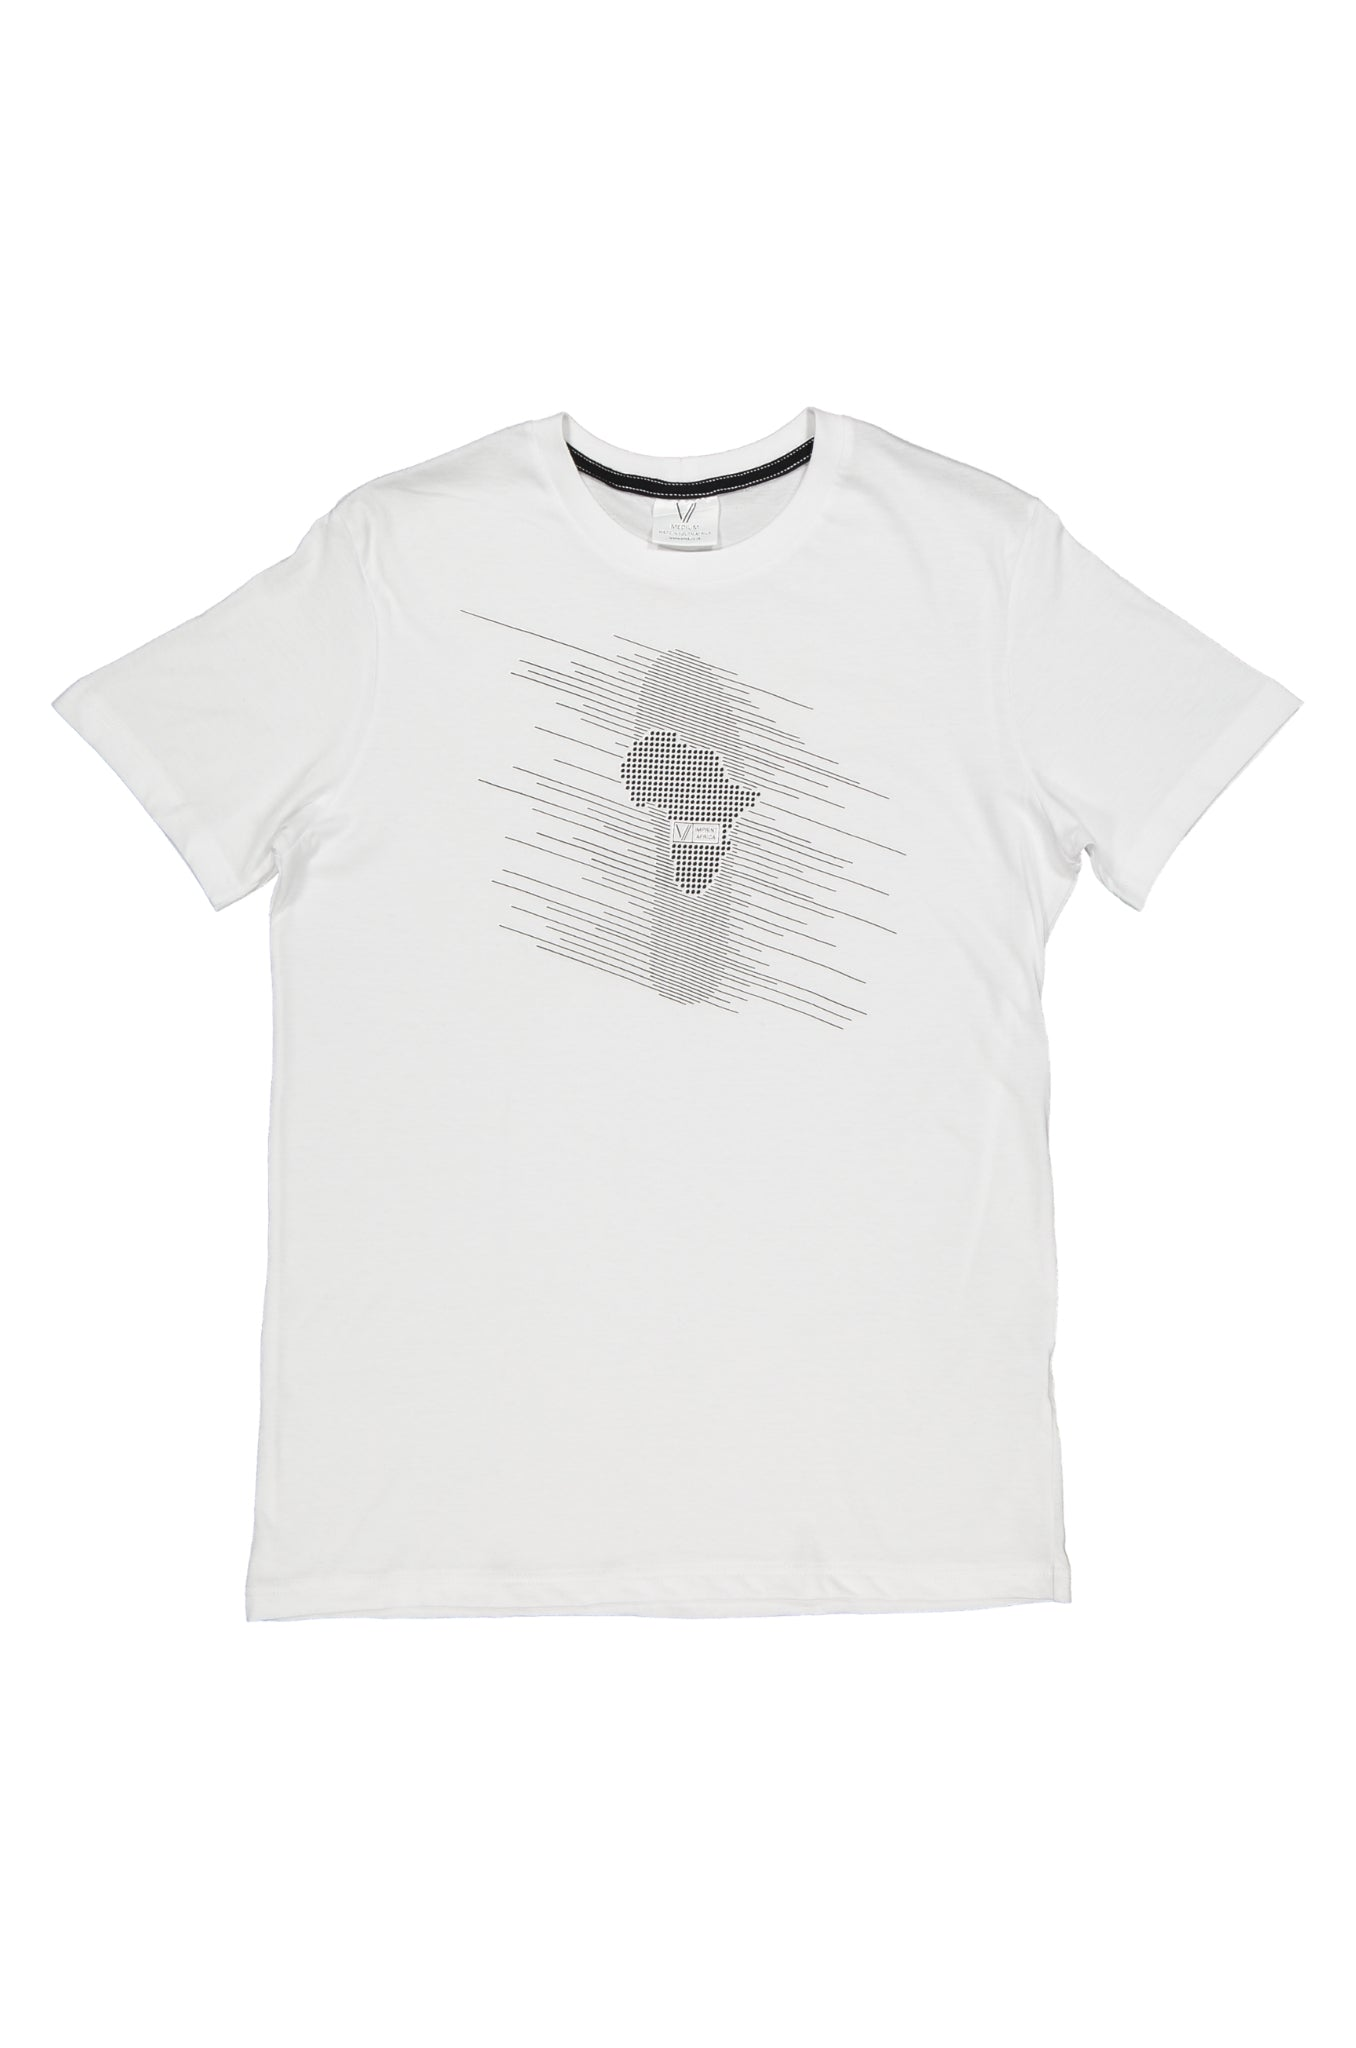 Imprint Africa Tee White